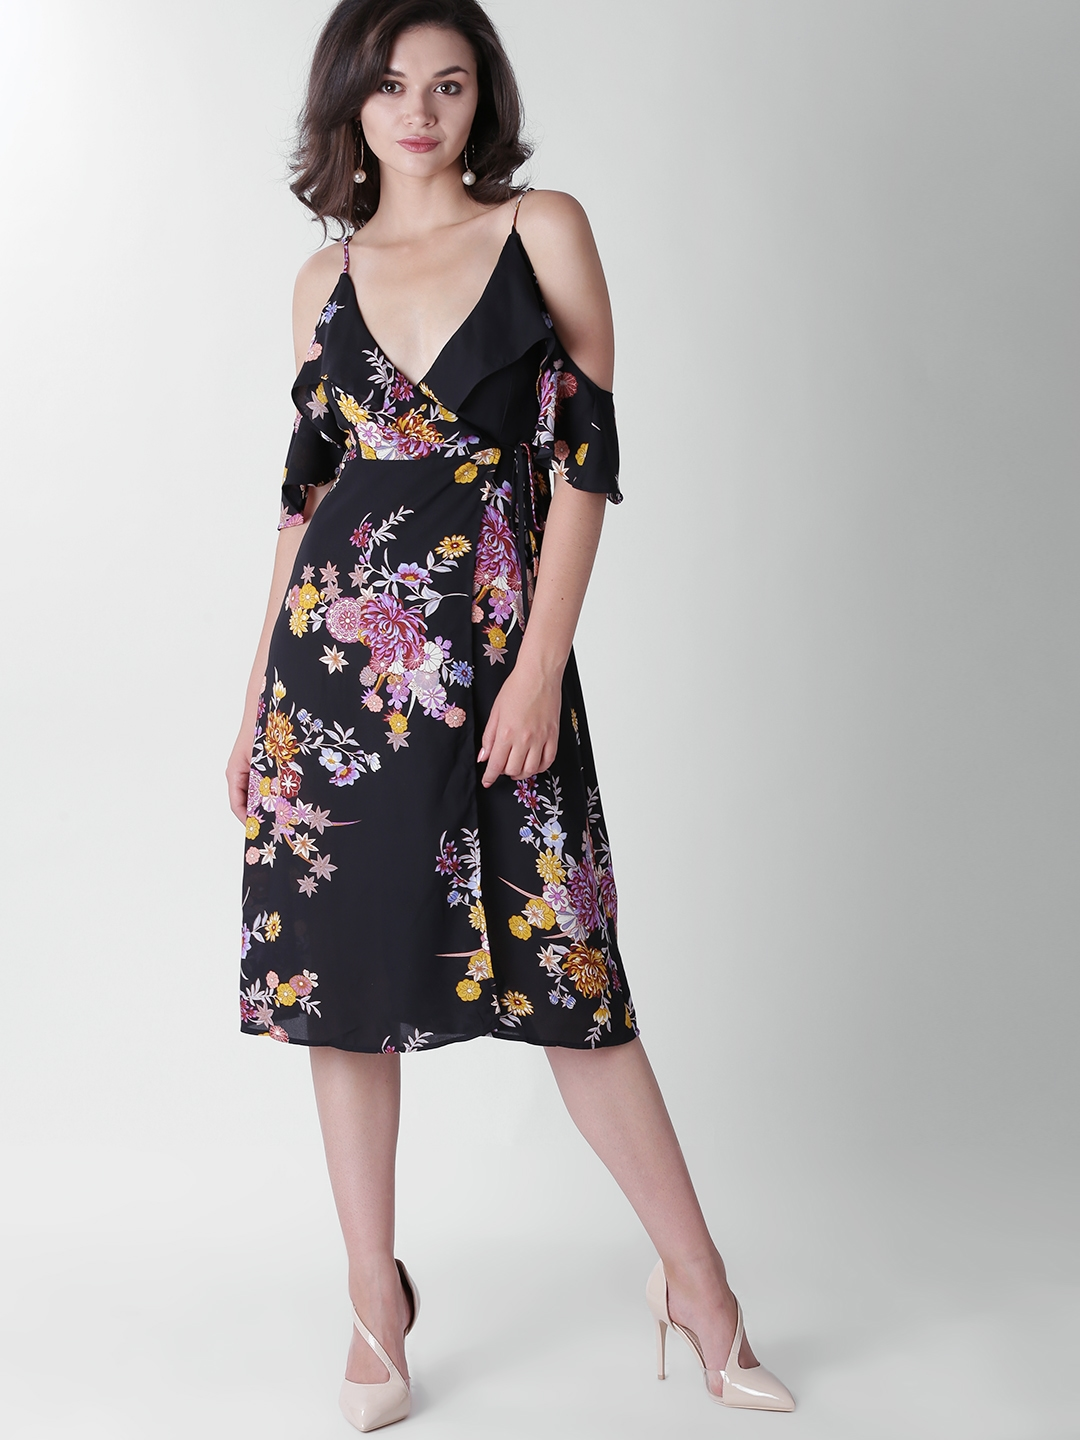 3f17b4a02e3 Buy FOREVER 21 Women Black Floral Print Wrap Dress - Dresses for ...